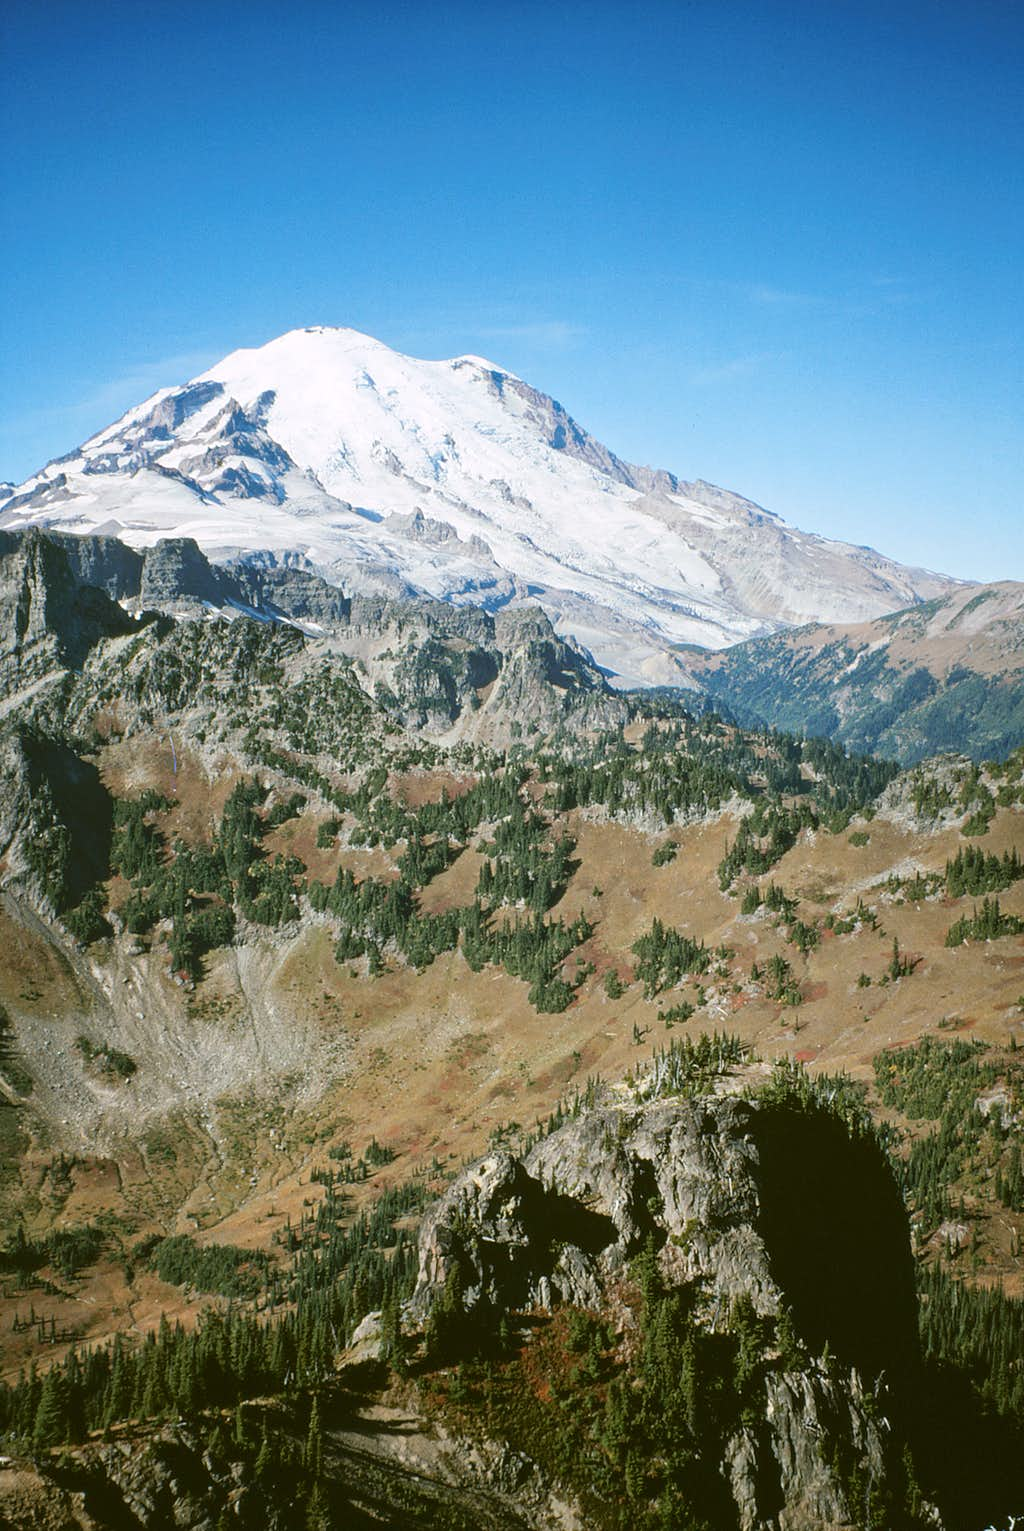 Mt. Rainier from Barrier Peak